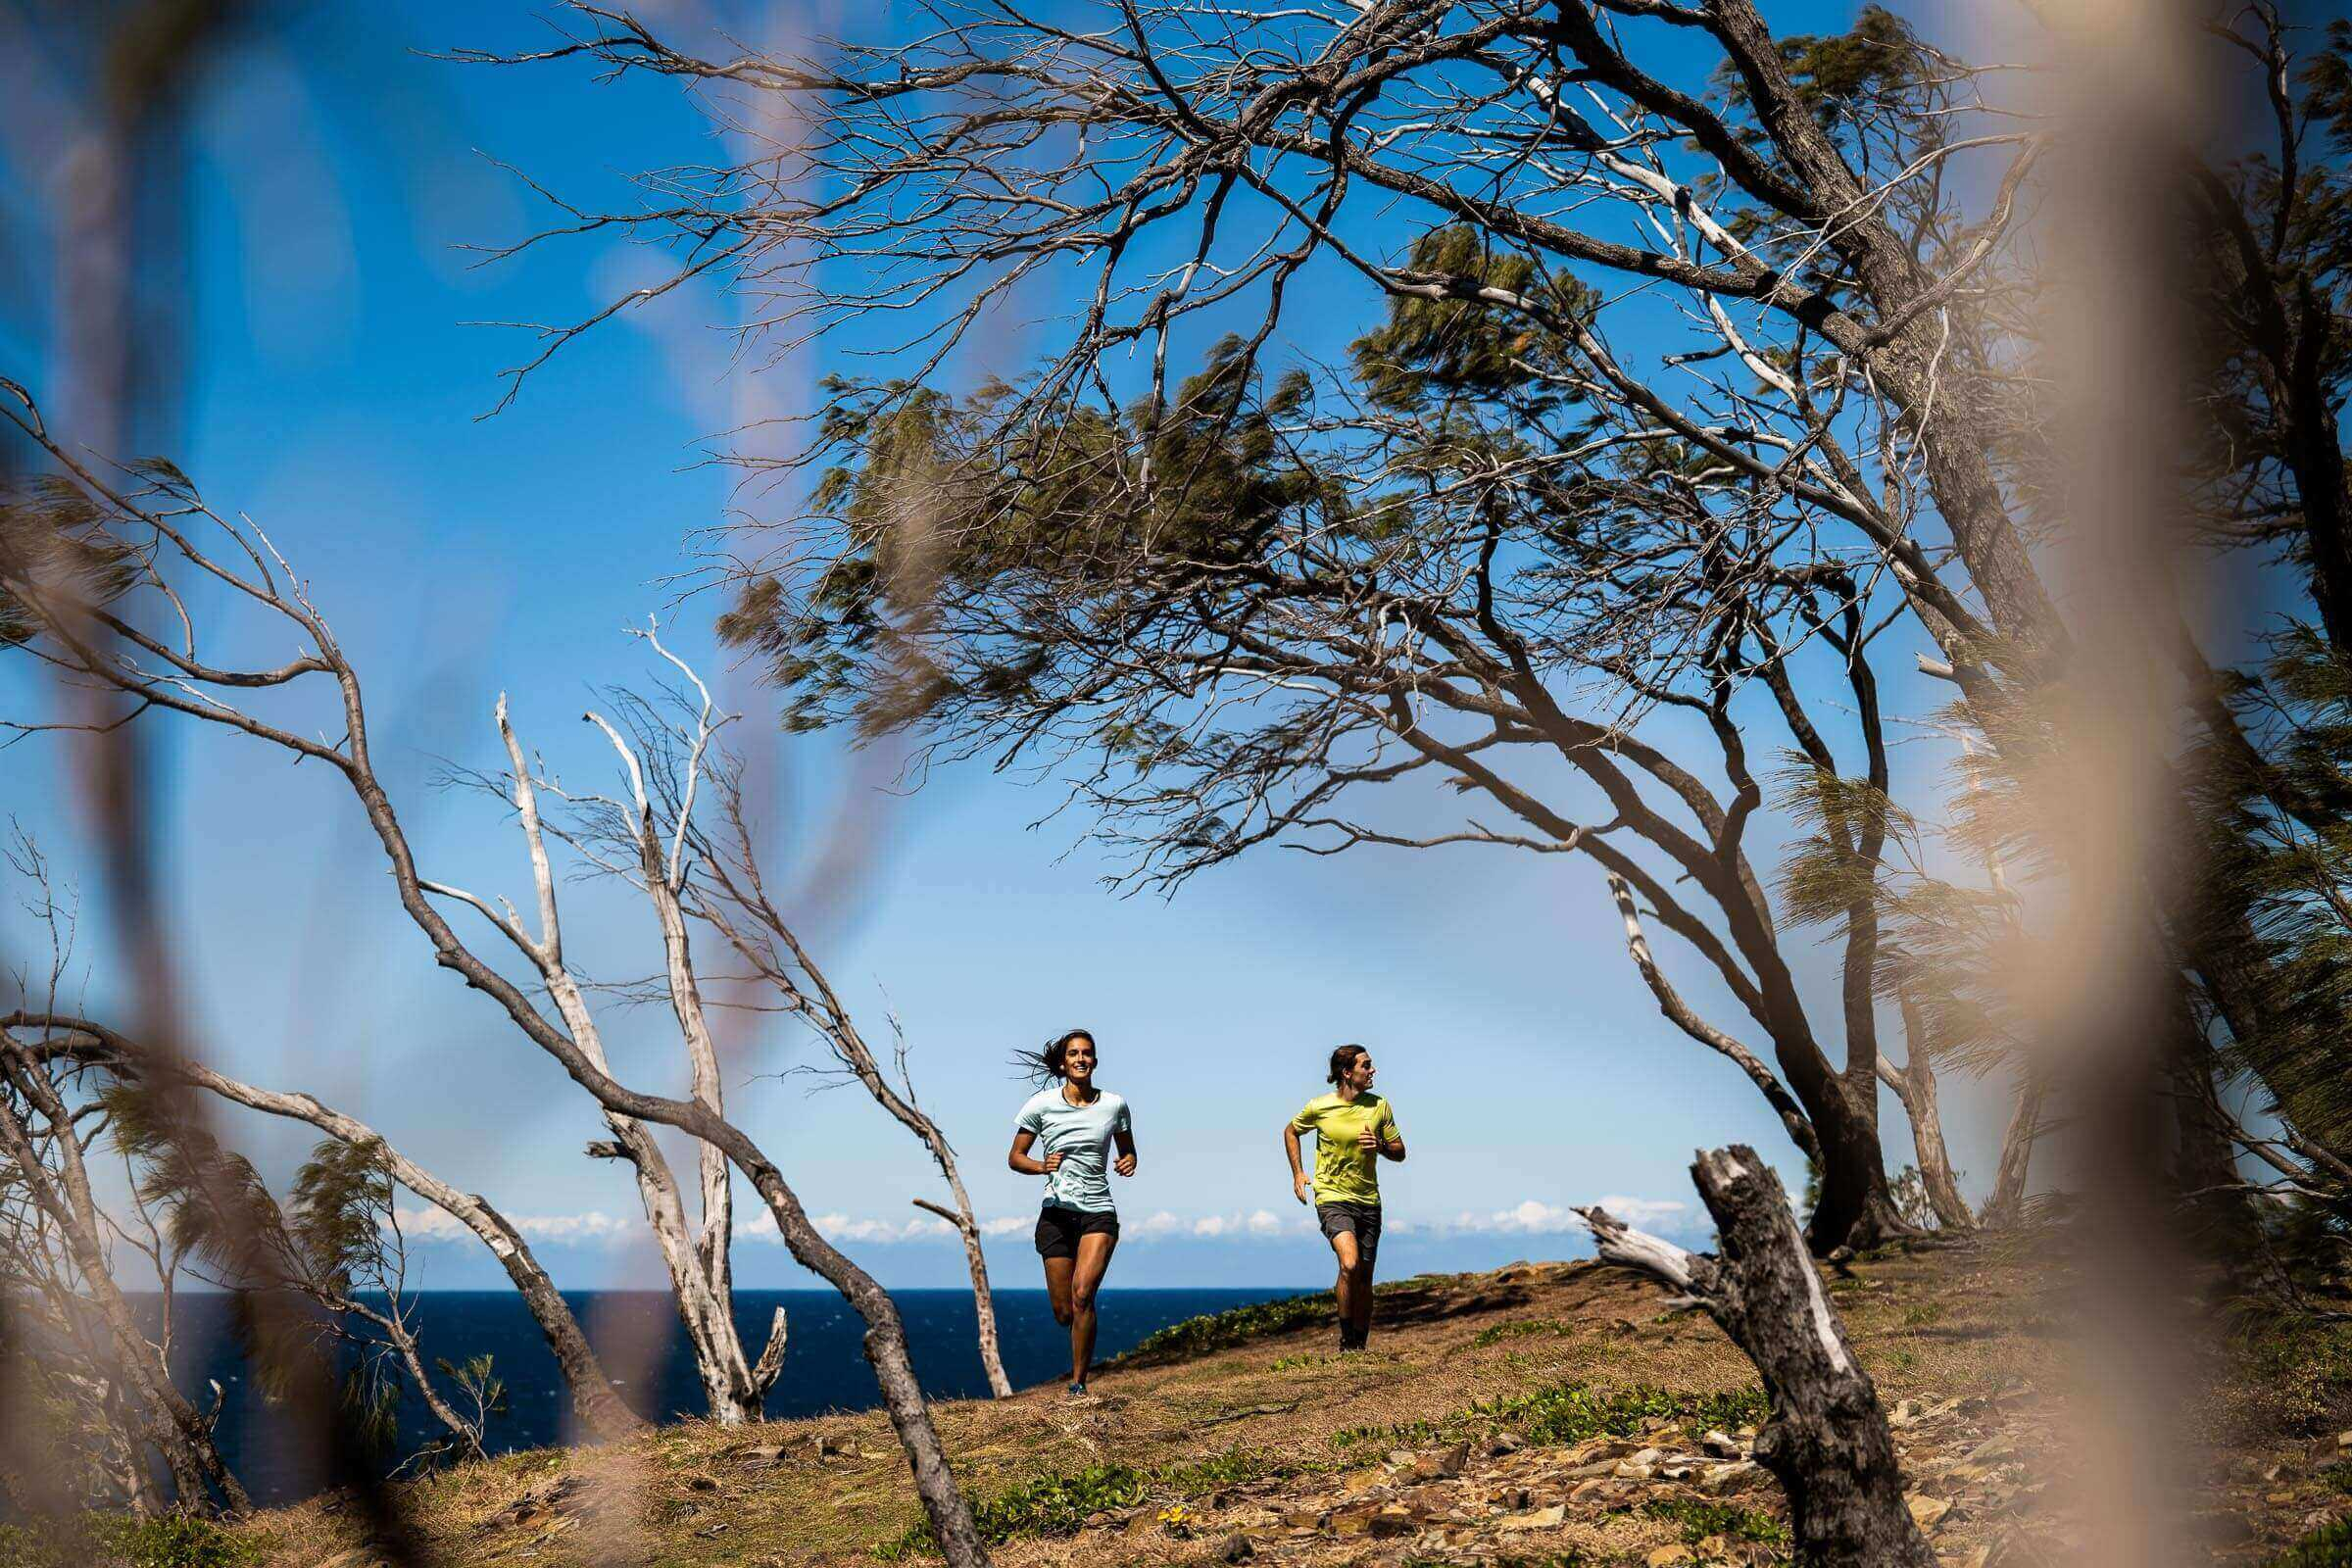 Trail running at Noosa Heads, Qld – from a commercial shoot for Paddy Pallin